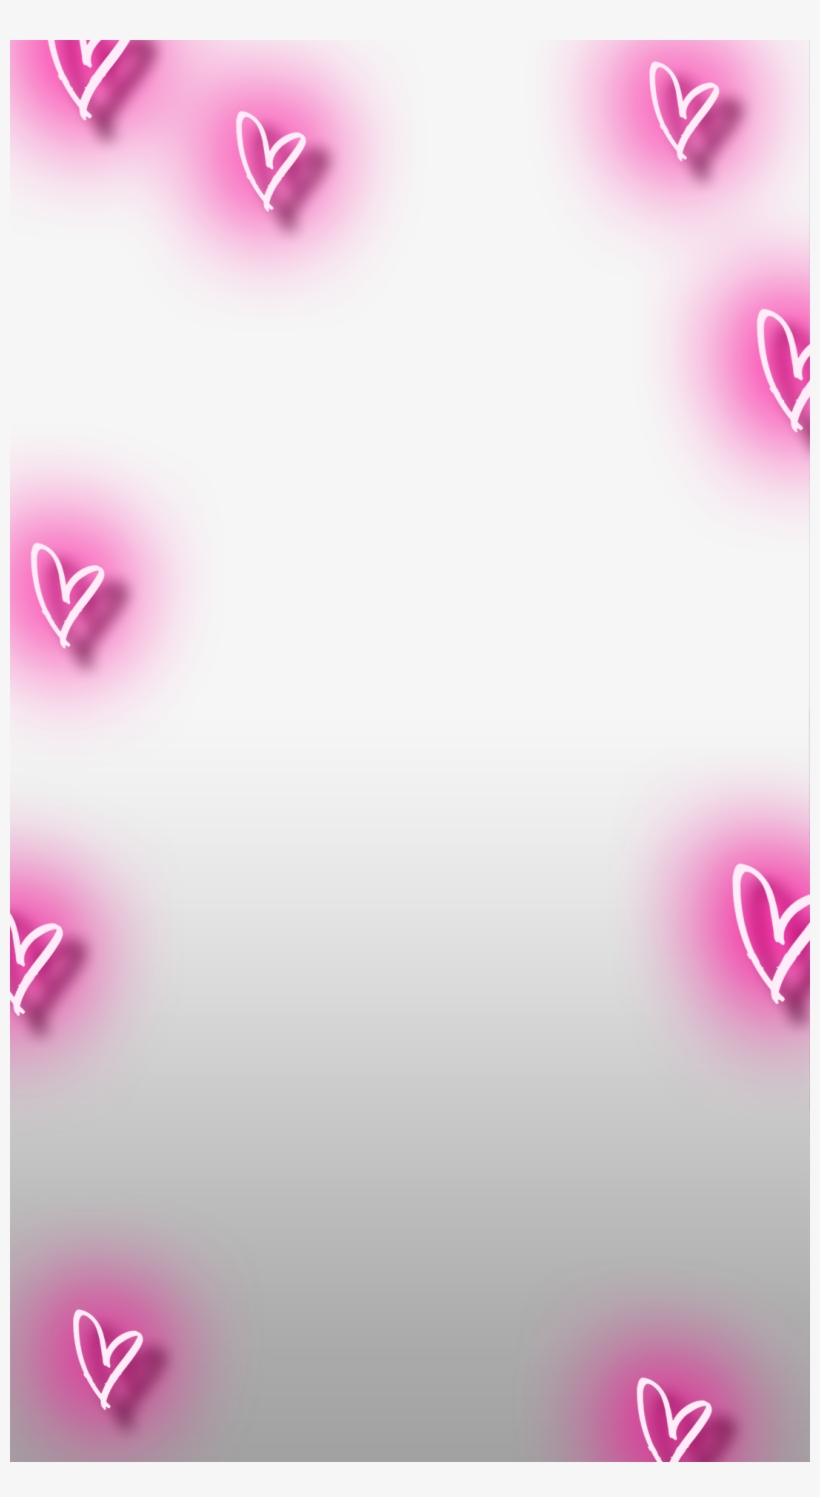 Neon Hearts Snapchat Heart Filter Png Free Transparent Png Download Pngkey